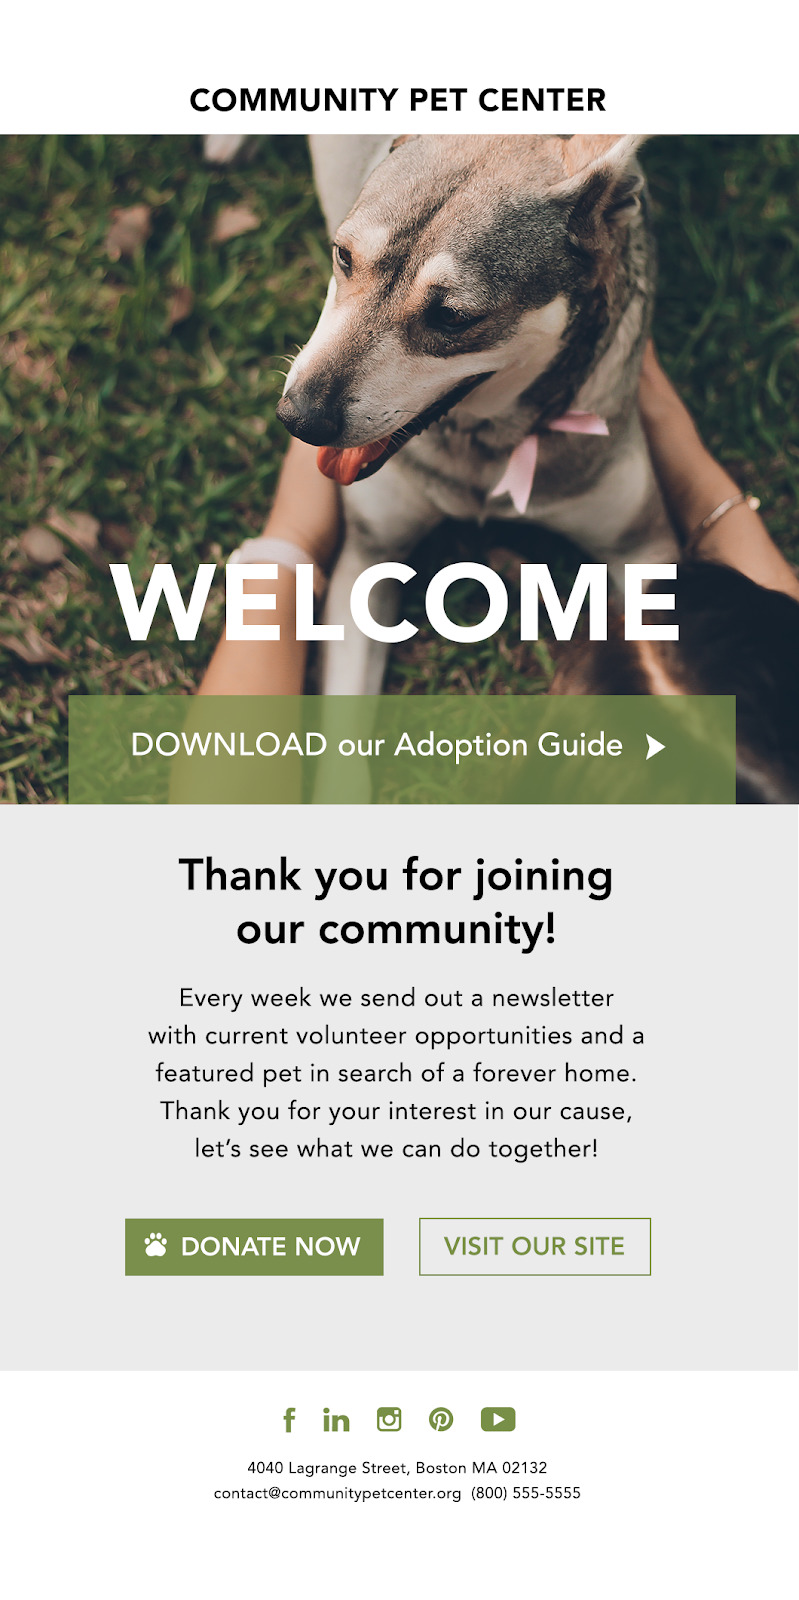 Marketing Automation for Nonprofits - welcome email